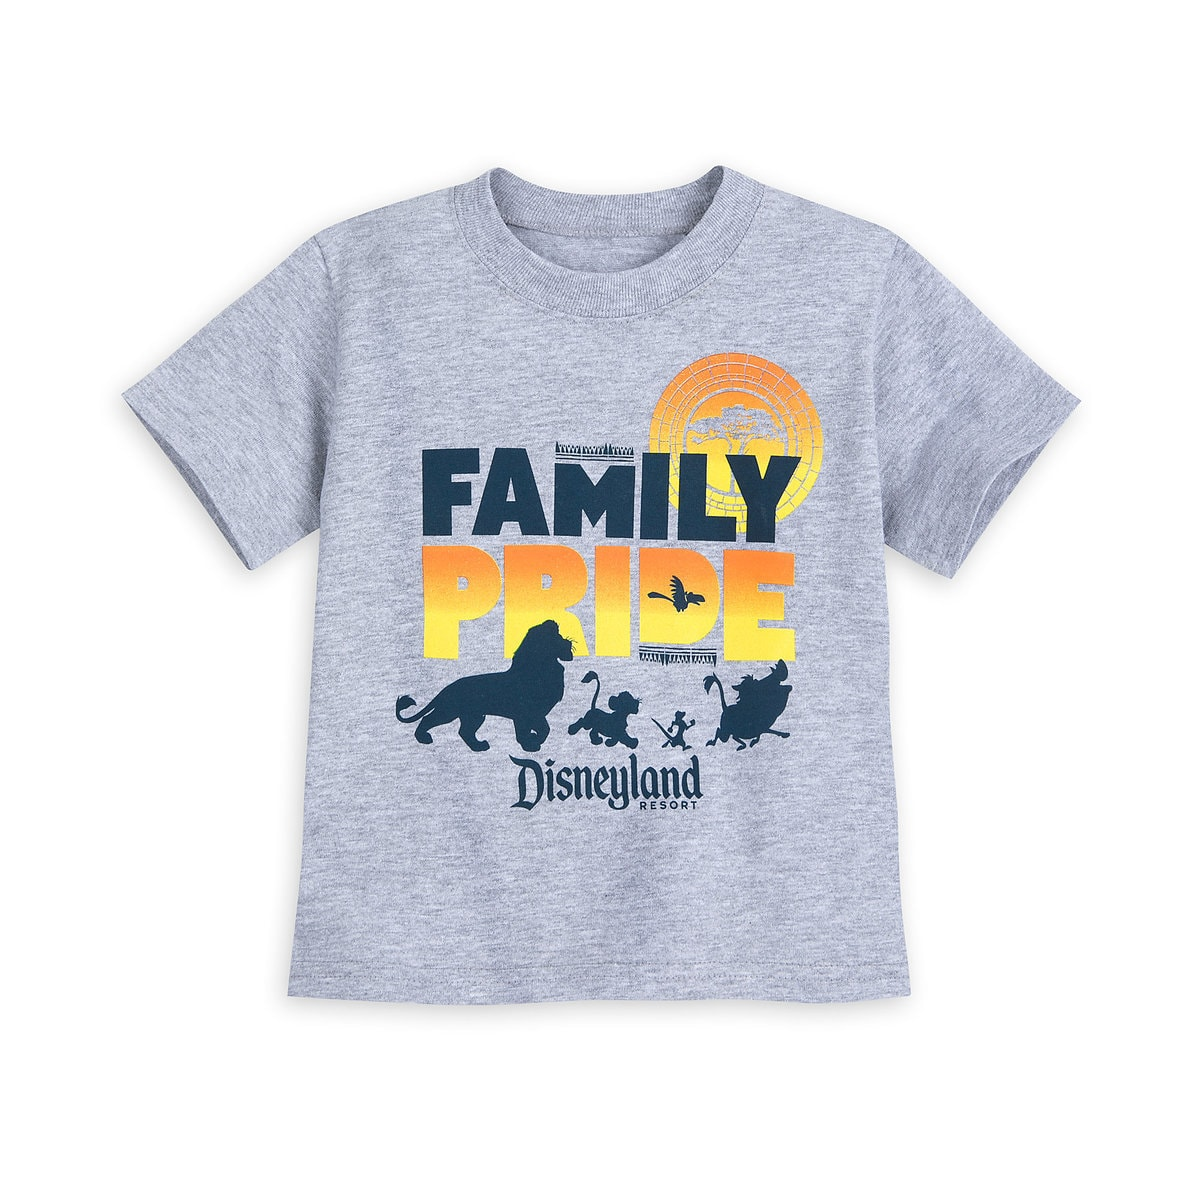 ea51eb5a Product Image of The Lion King Family Pride T-Shirt for Toddlers -  Disneyland #